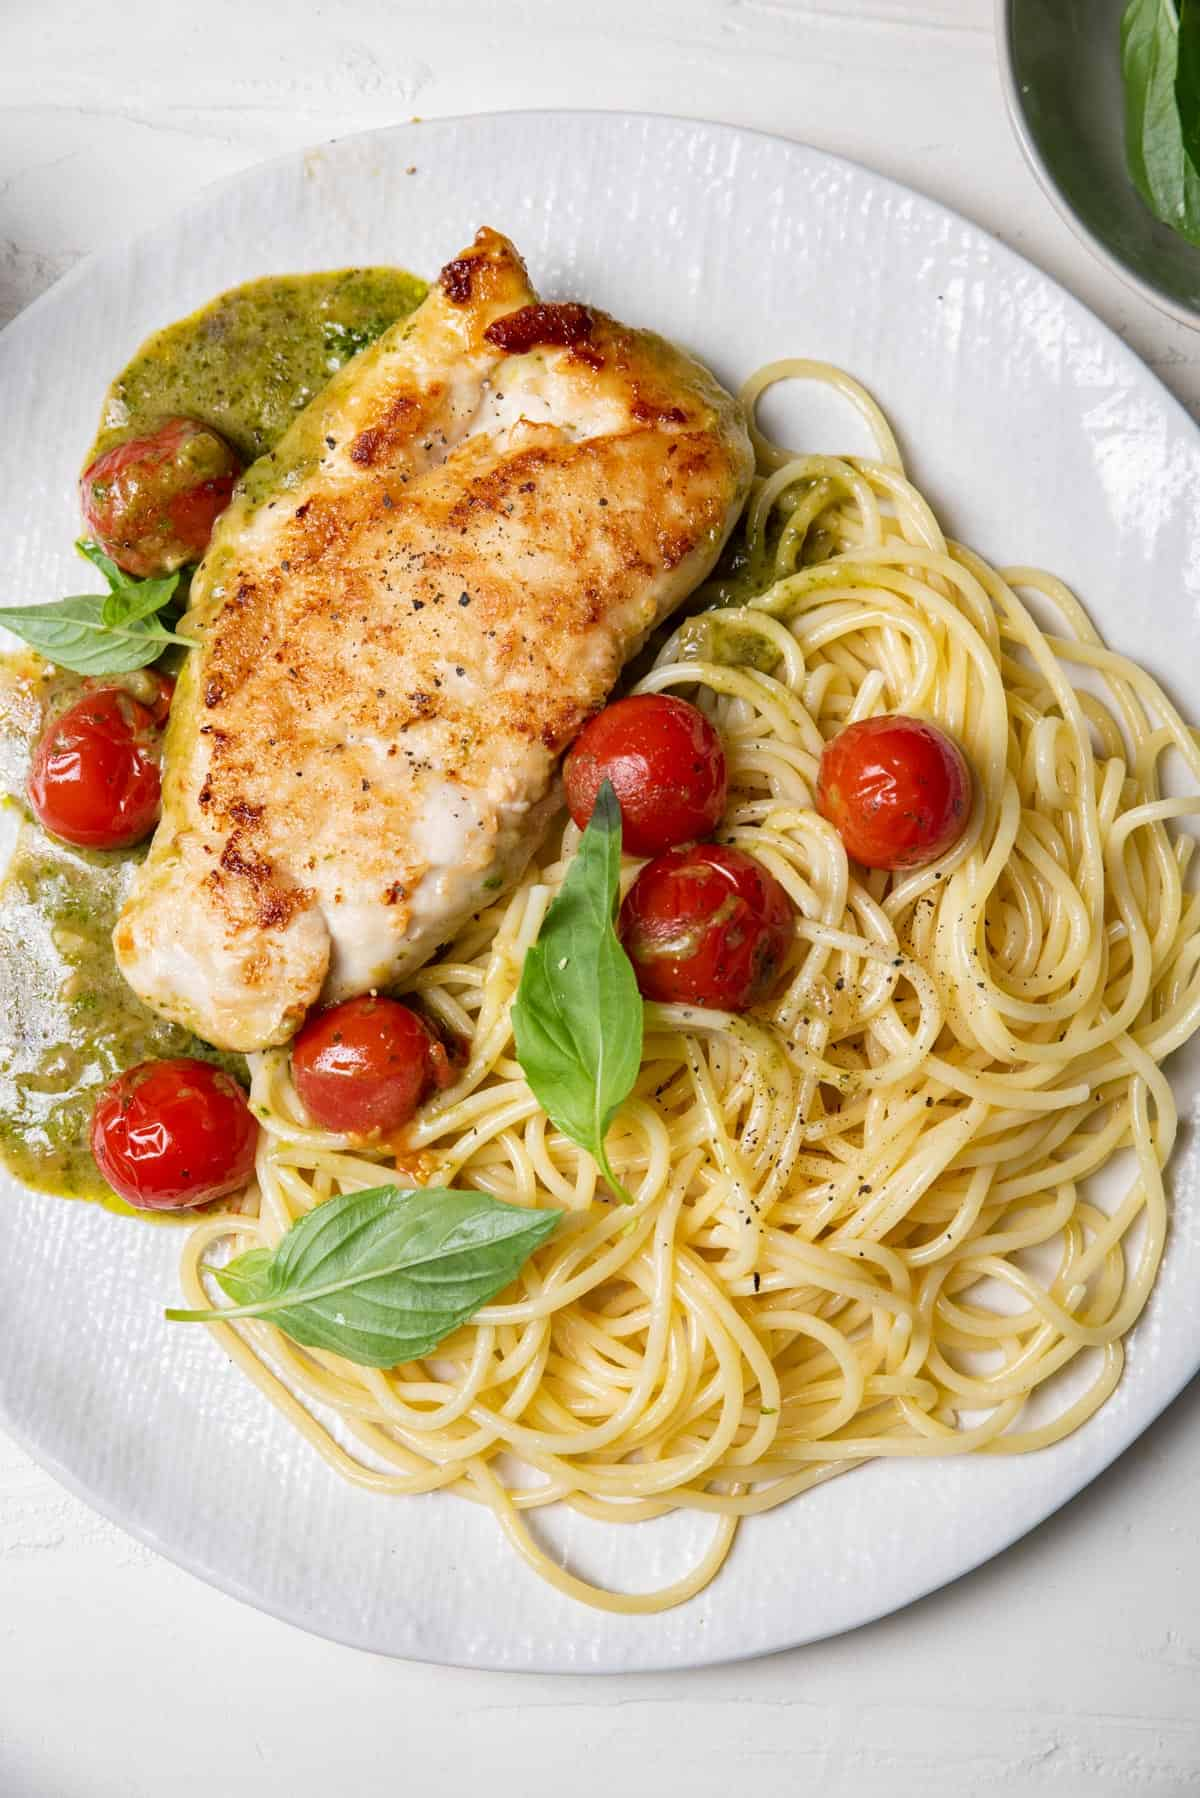 Creamy pesto chicken served with spaghetti and cherry tomatoes